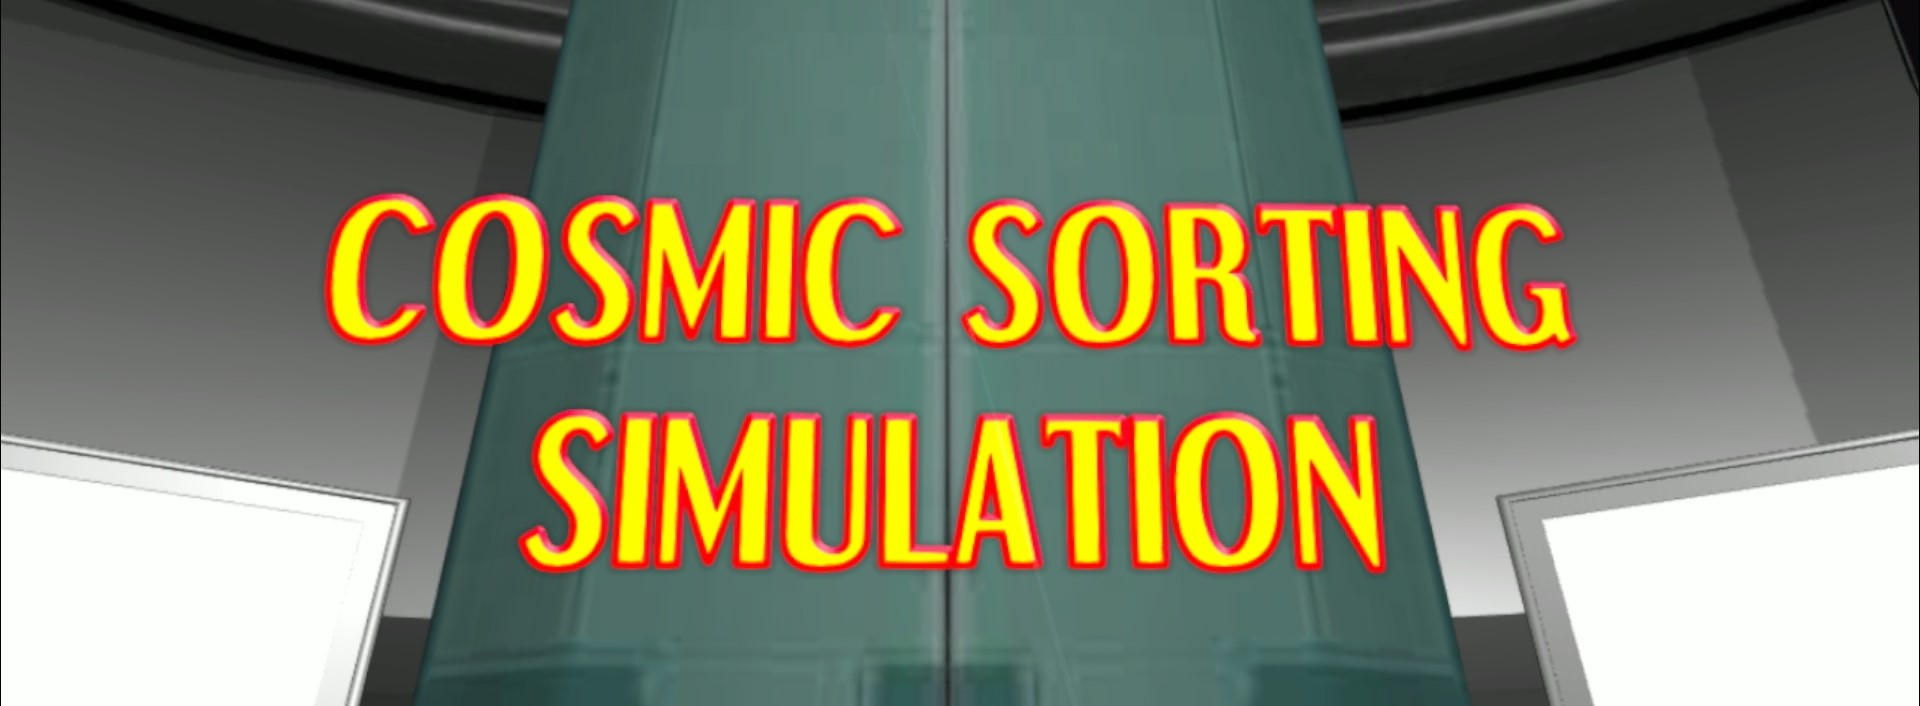 Cosmic Sorting Simulation - VR